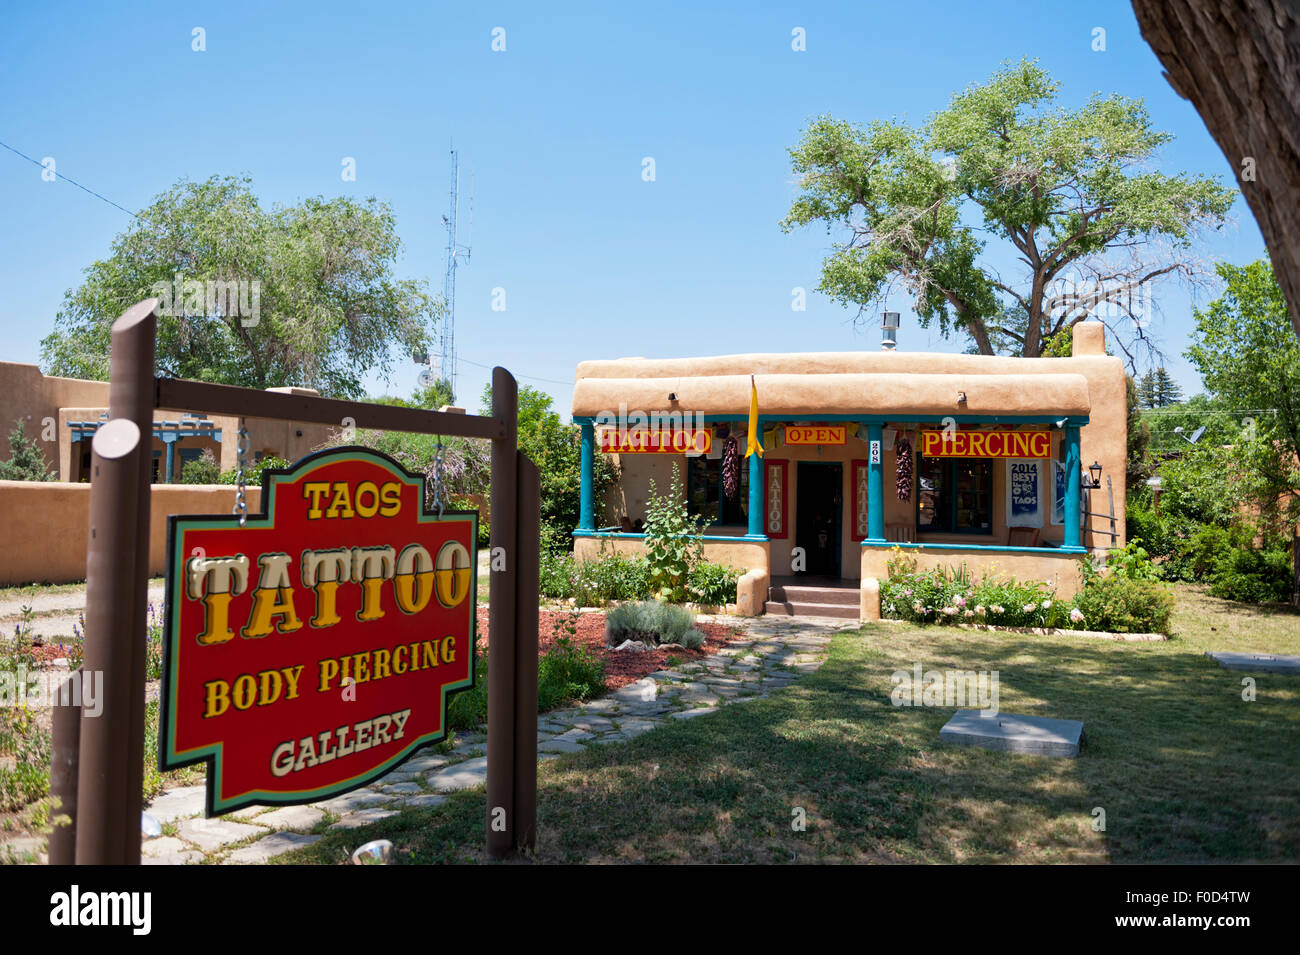 Taos tattoo and body piercing shop, Taos New Mexico - Stock Image